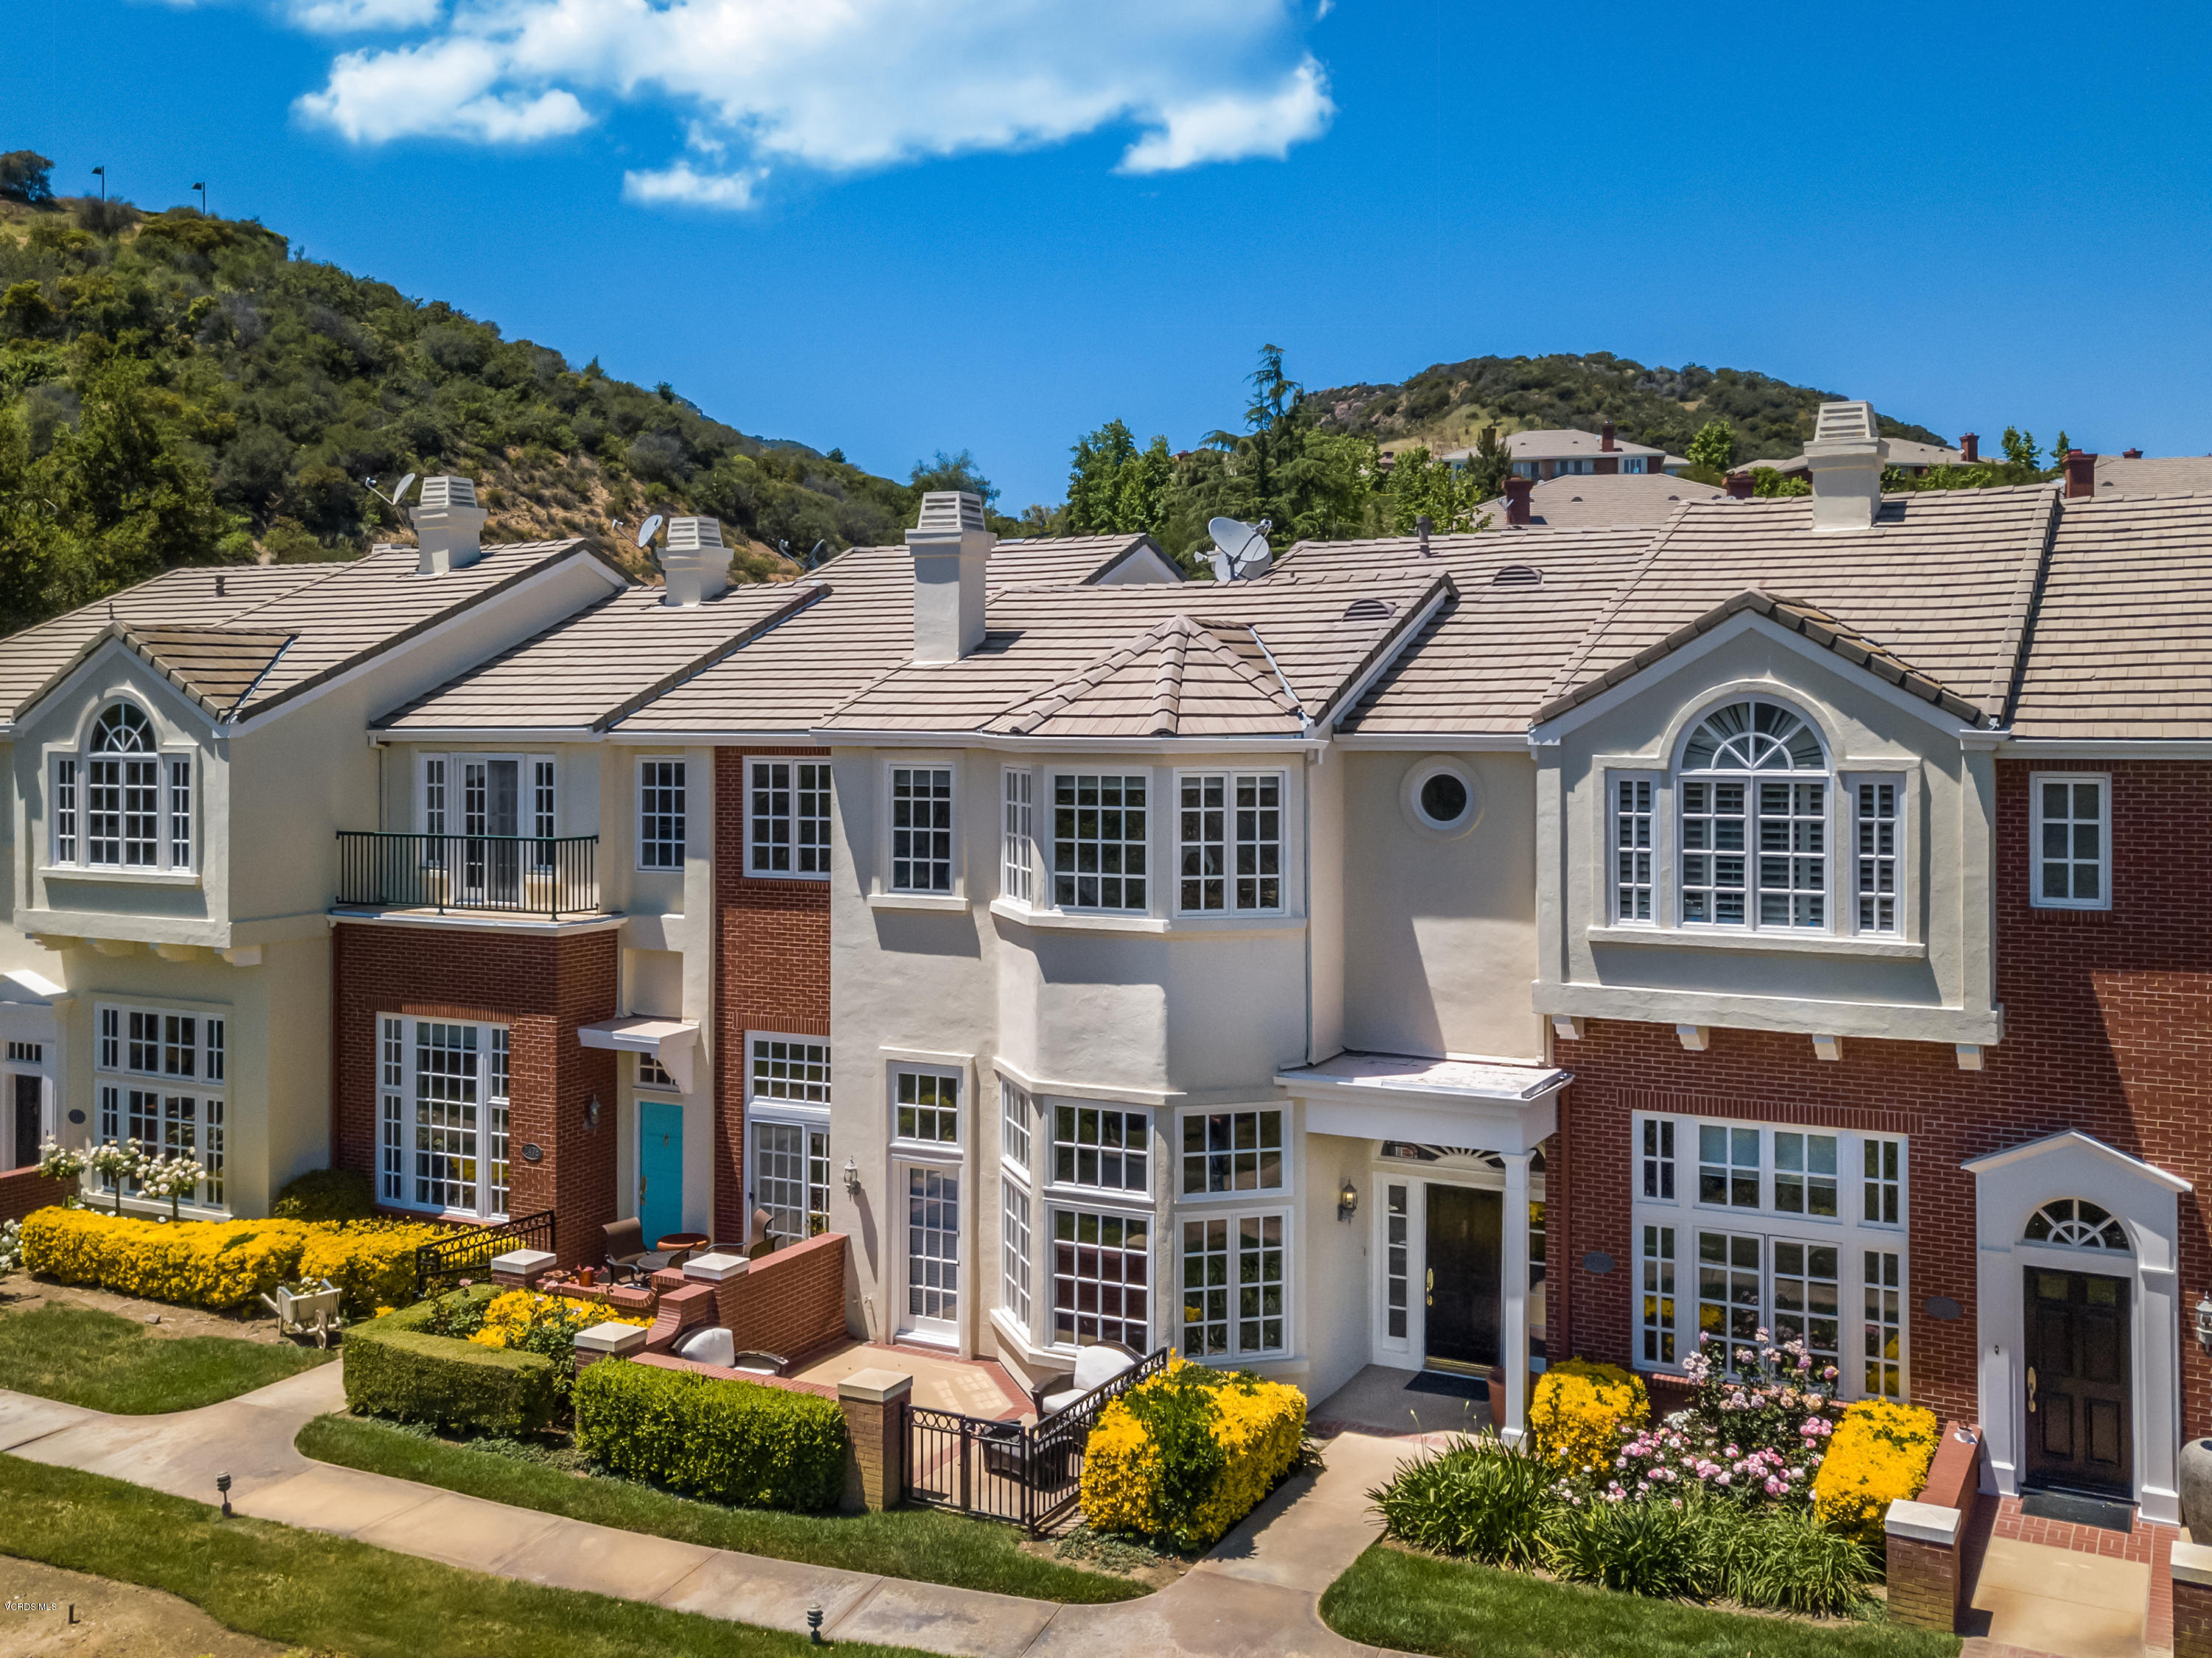 Photo of 2466 Swanfield Court, Thousand Oaks, CA 91361